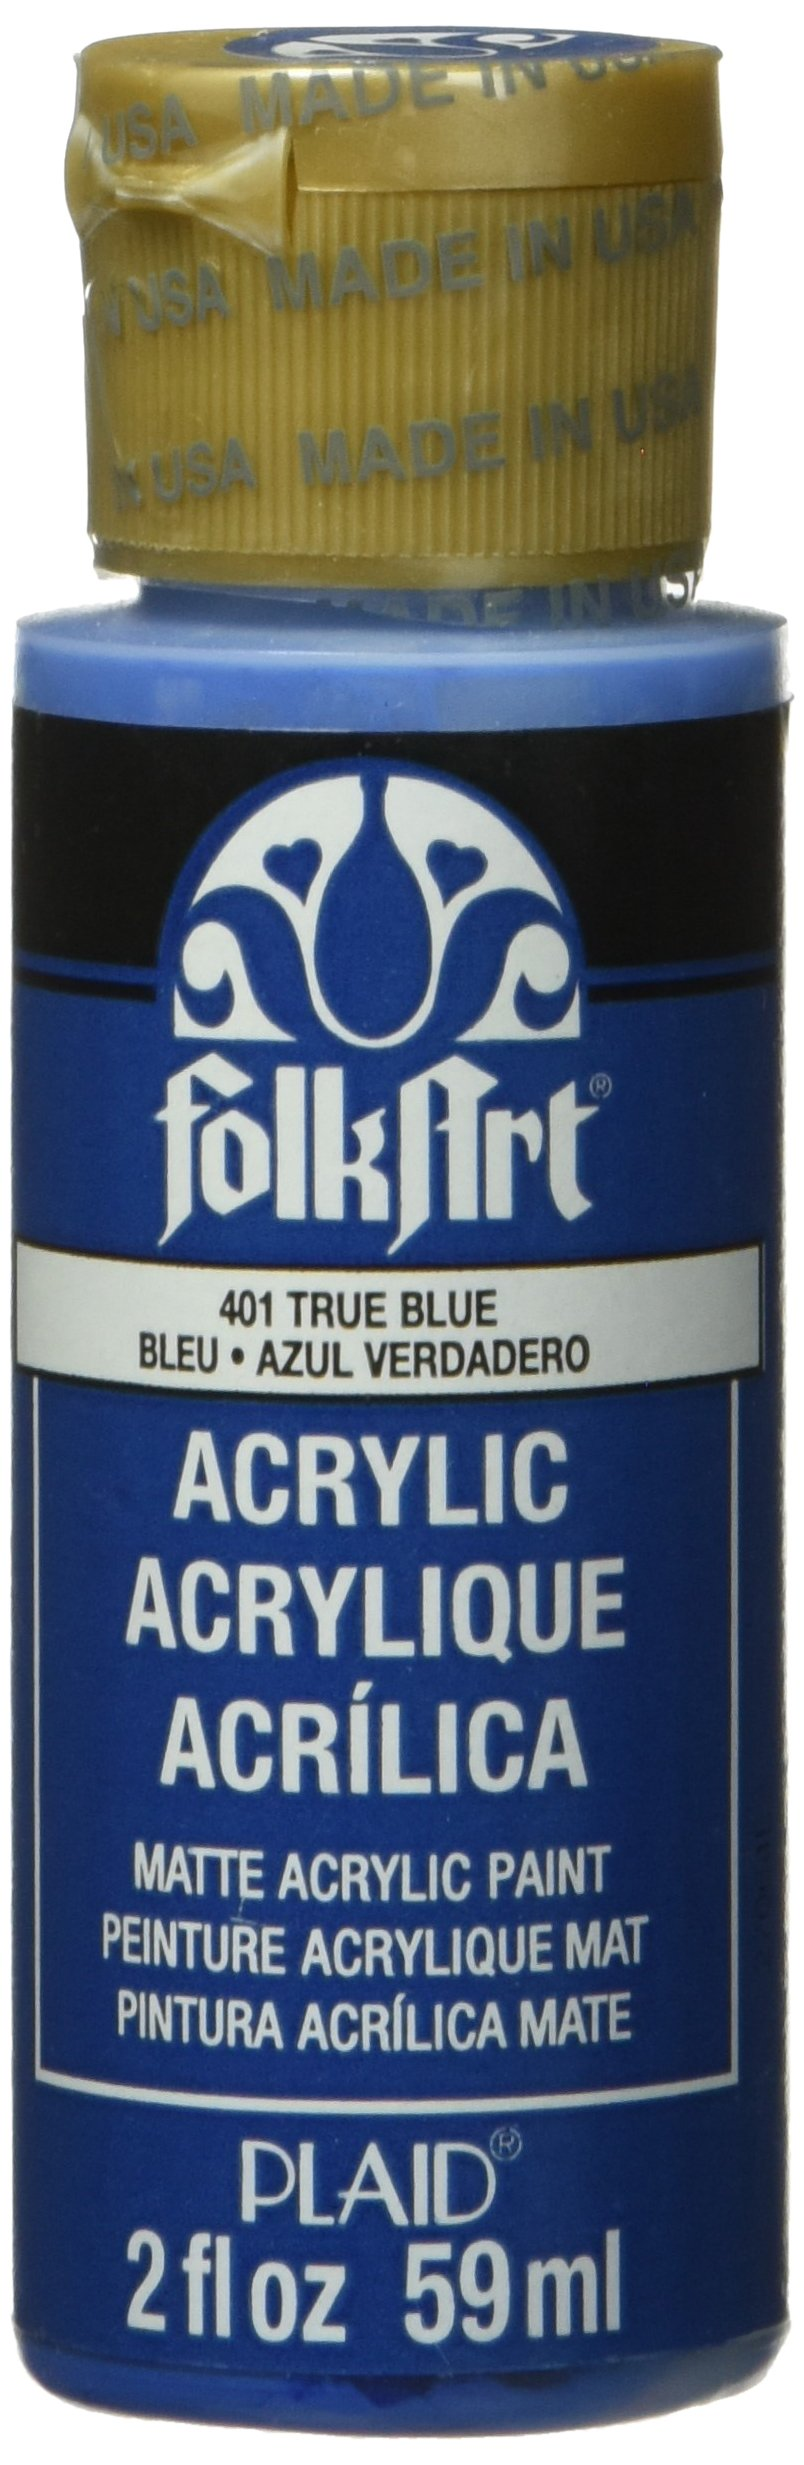 FolkArt Acrylic Paint in Assorted Colors (2 oz), 401, TRUE Blue